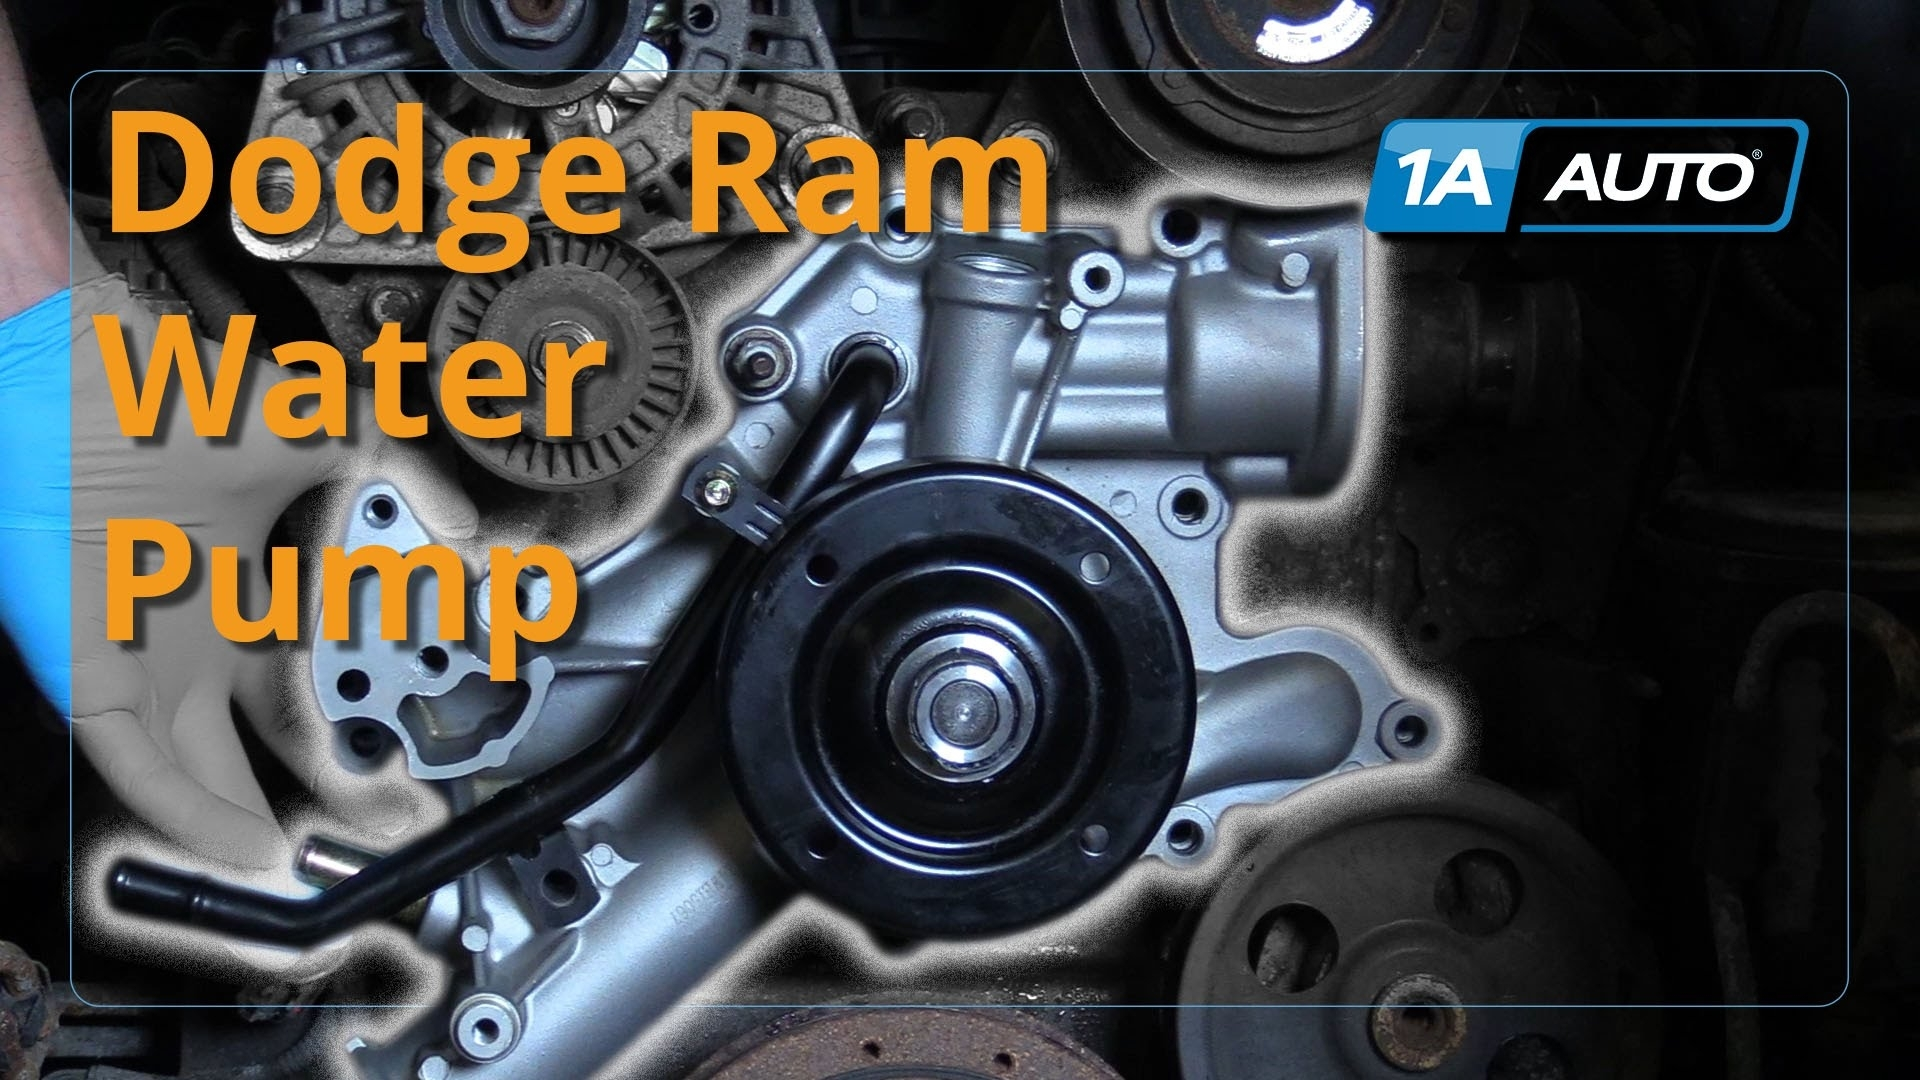 How To Install Replace Water Pump 2008 Dodge Ram 5.7L Buy Quality for 2004 Dodge Ram 1500 Parts Diagram